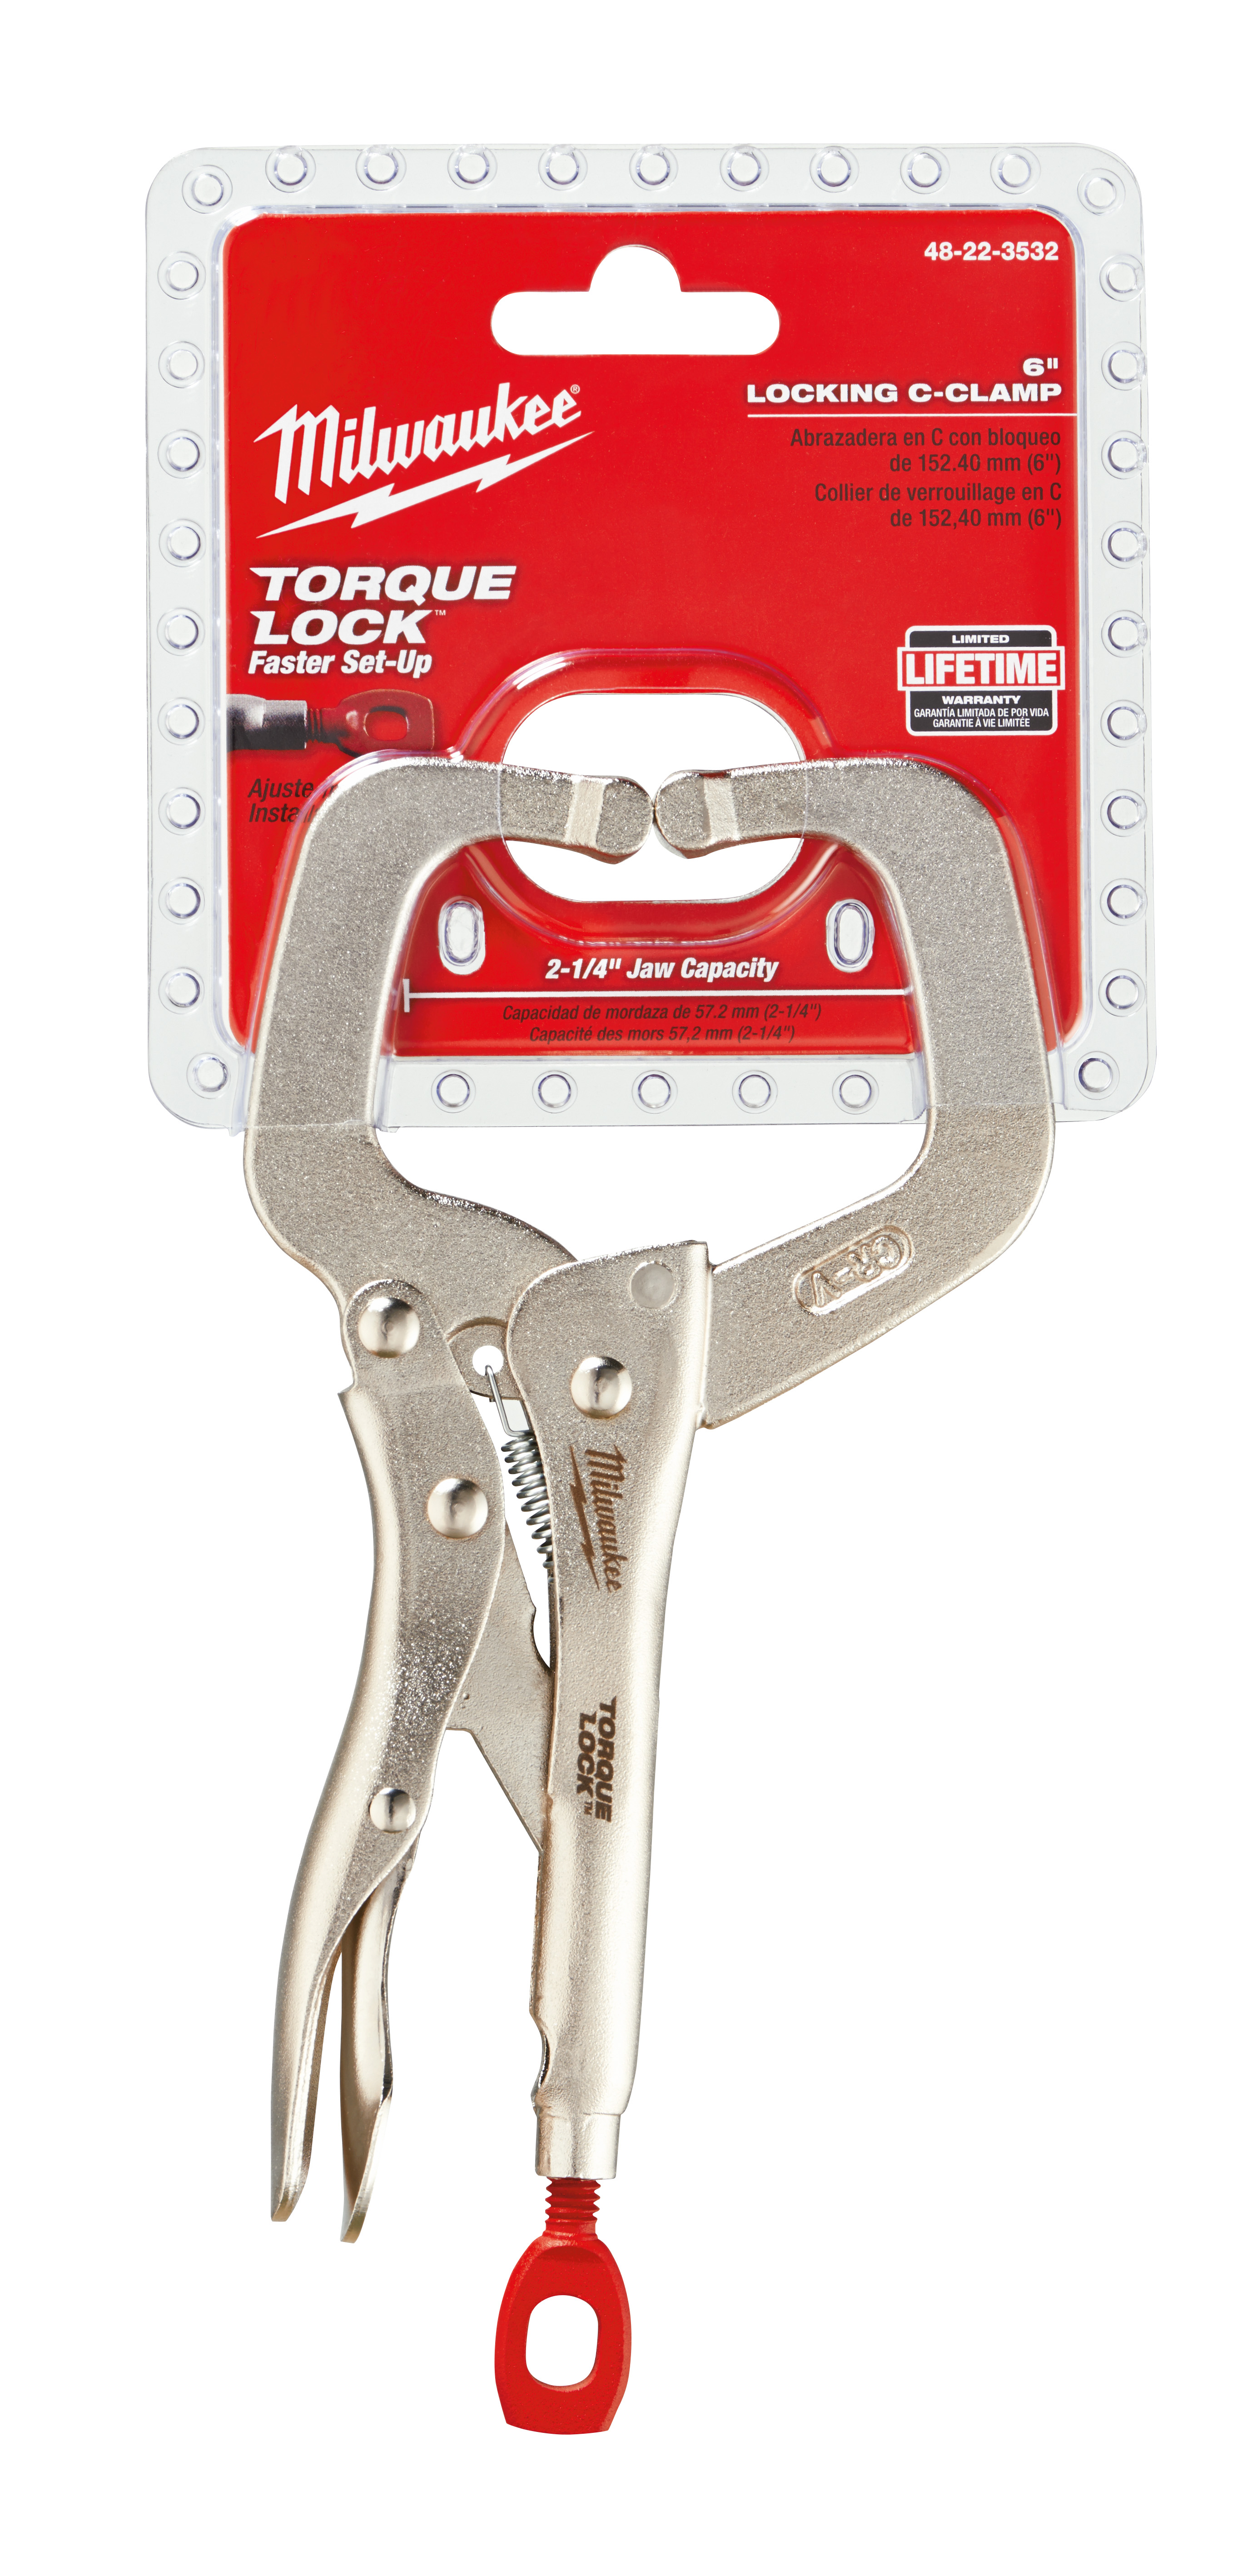 Milwaukee® TORQUE LOCK™ 48-22-3532 Regular Jaw Locking C-Clamp, Polished Chrome, 2-1/4 in D Throat, 1/2 in Jaw Opening, 6 in Jaw, Forged Alloy Steel